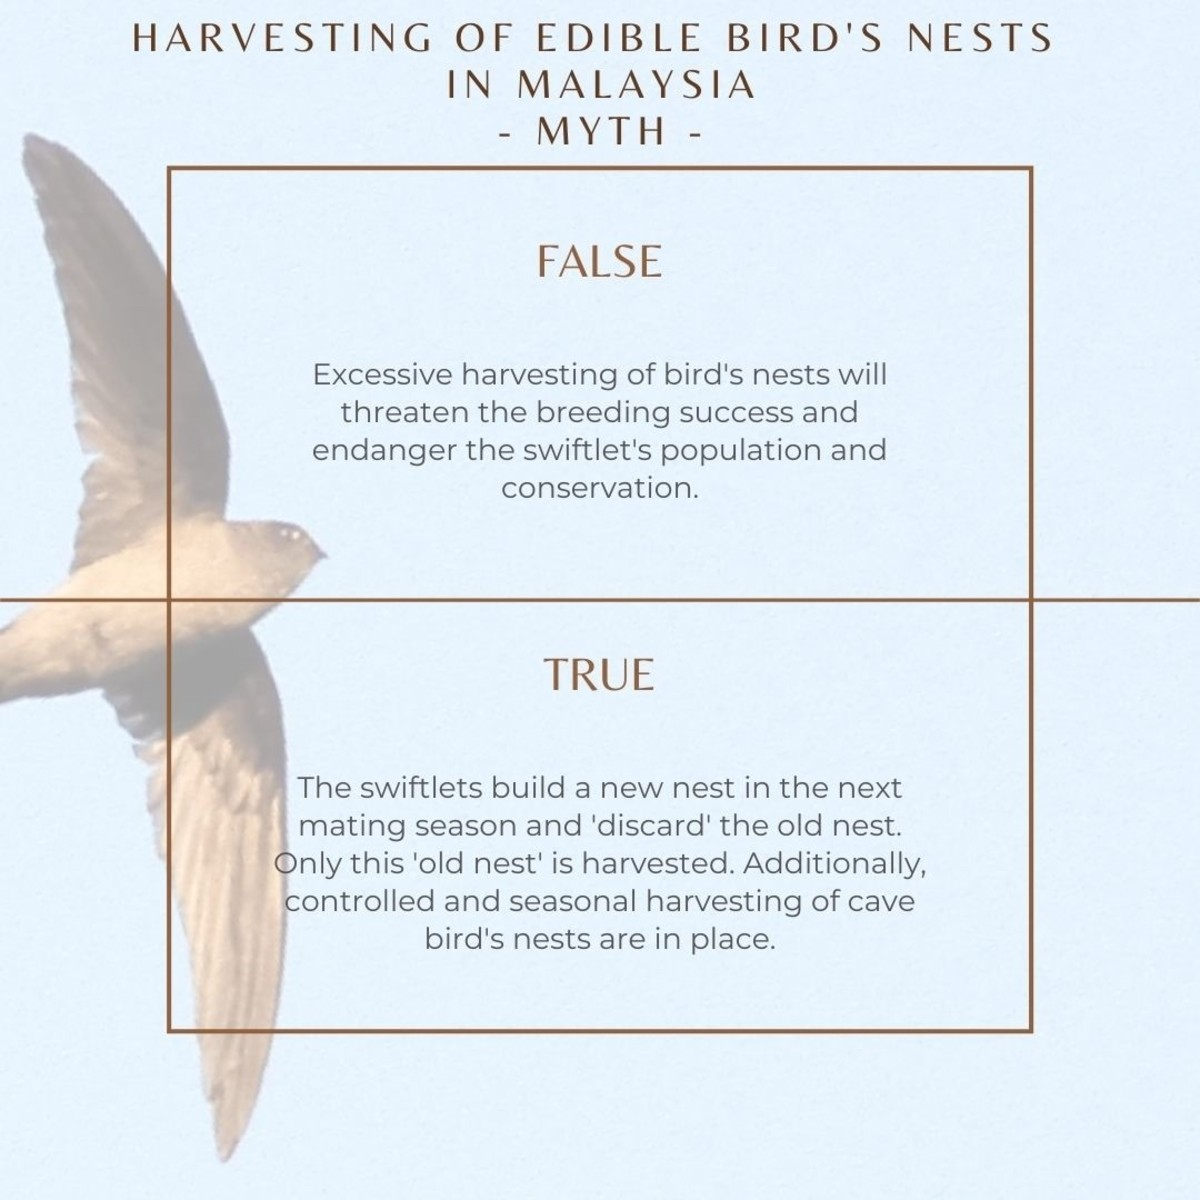 The swiftlets build a new nest in the next mating season and 'discard' the old nest. Only this 'old nest' is harvested. Additionally, controlled and seasonal harvesting of cave bird's nests are in place.